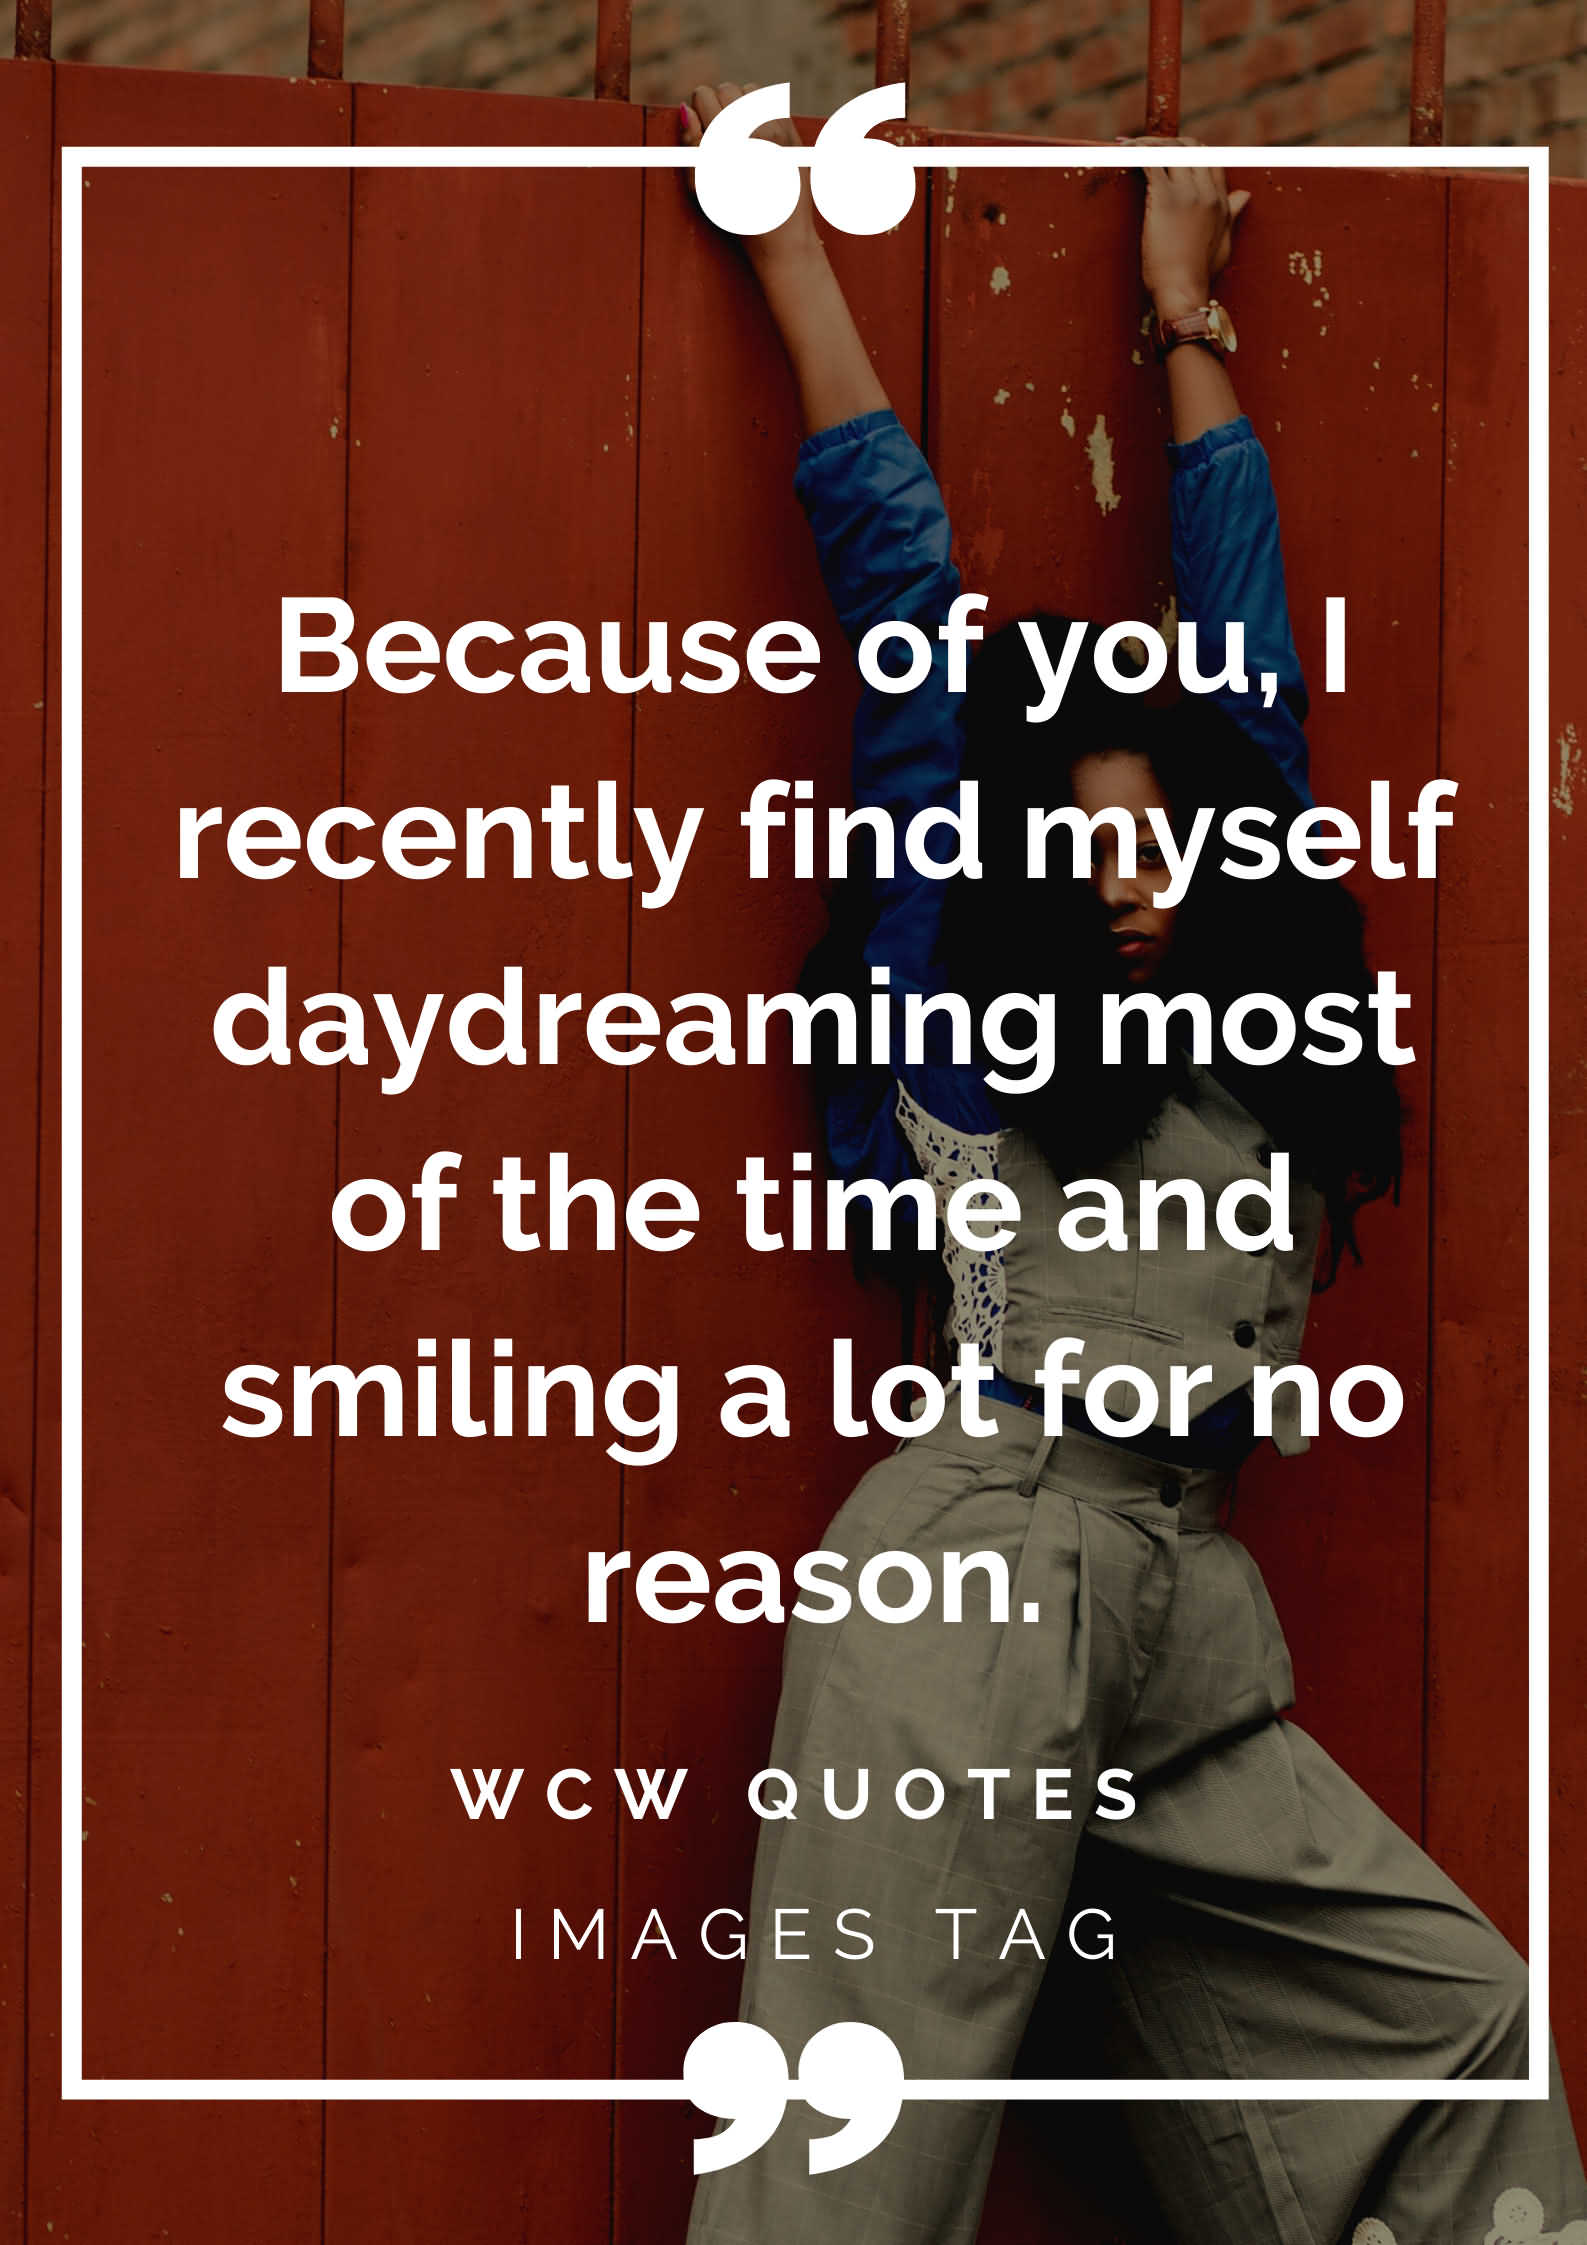 Because Of You I Recently Find Myself Daydreaming Most Of The Time And Smiling A Lot For No Reason.wcw Quotes For Myself